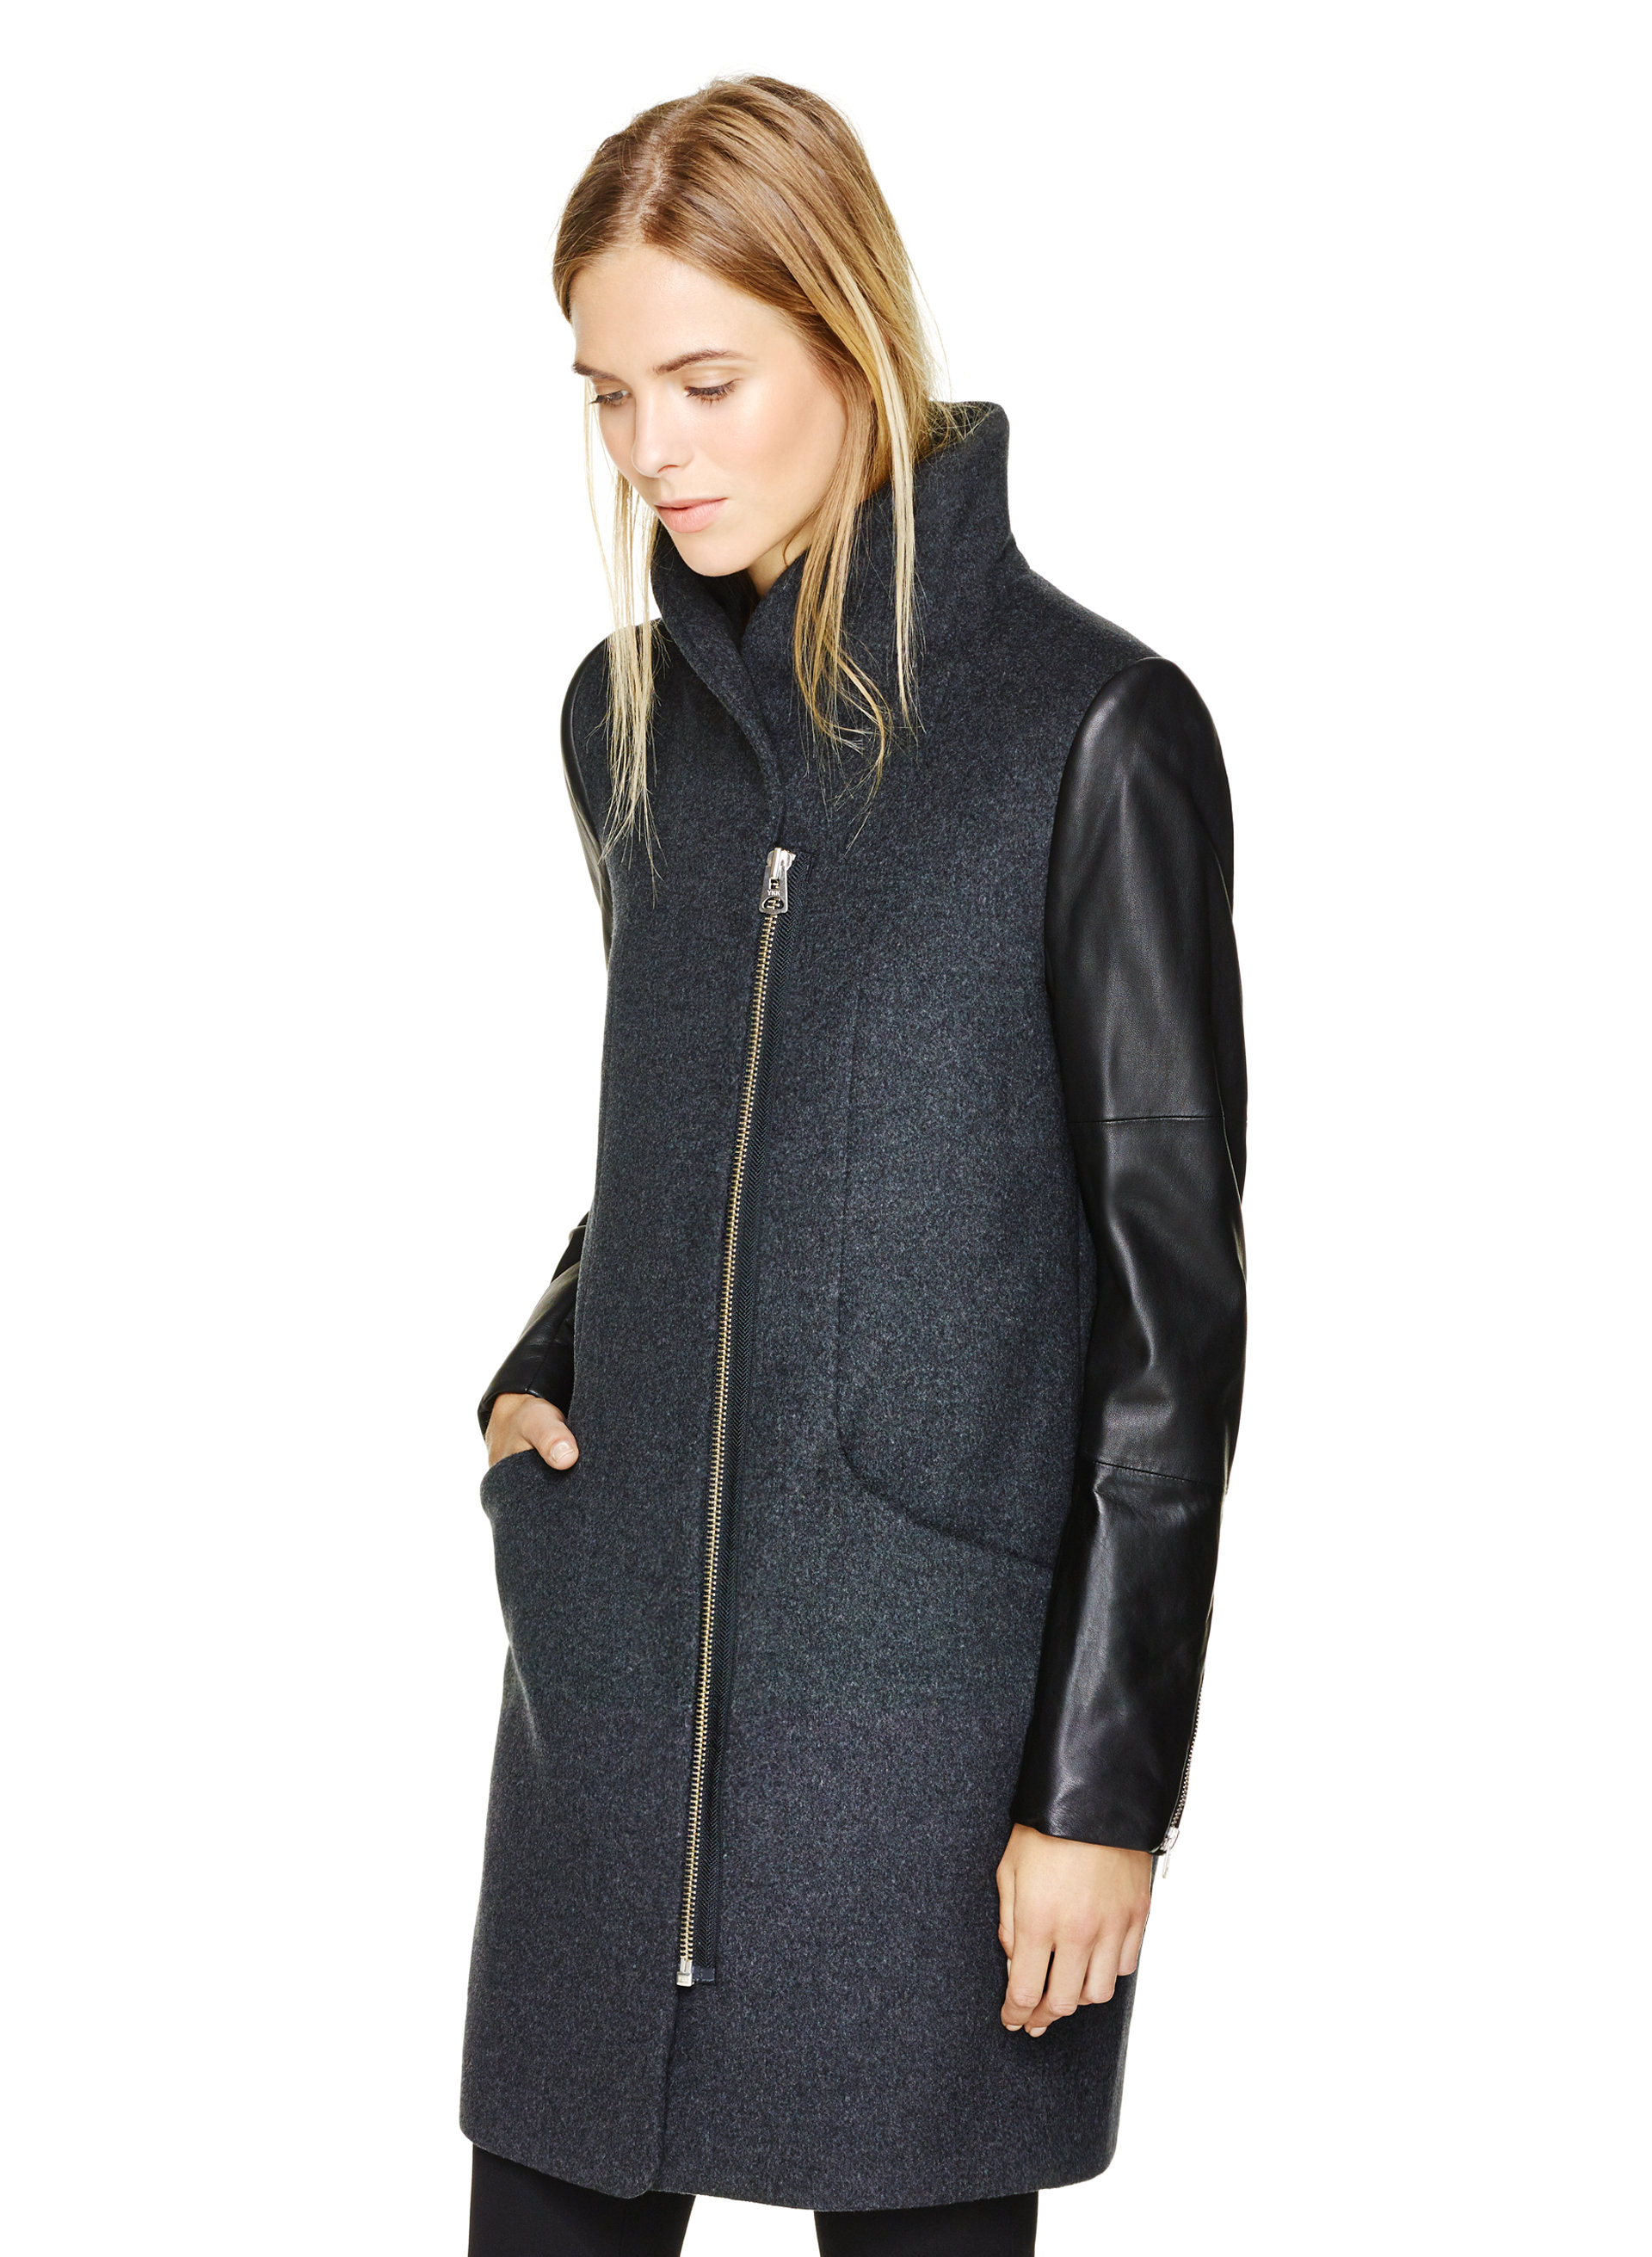 Oversized Patchwork Wool Cocoon Coat. $1, Isabel Marant Marvey Corduroy Shirt Jacket. $ Pre-Order. Isabel Marant Filipo Brushed Wool-Cashmere Cocoon Coat. $1, Pre-Order. Barneys New York Lamb Fur Coat. $2, WELCOME TO THE BARNEYS NEW YORK PRIVATE JEWELRY SALE.